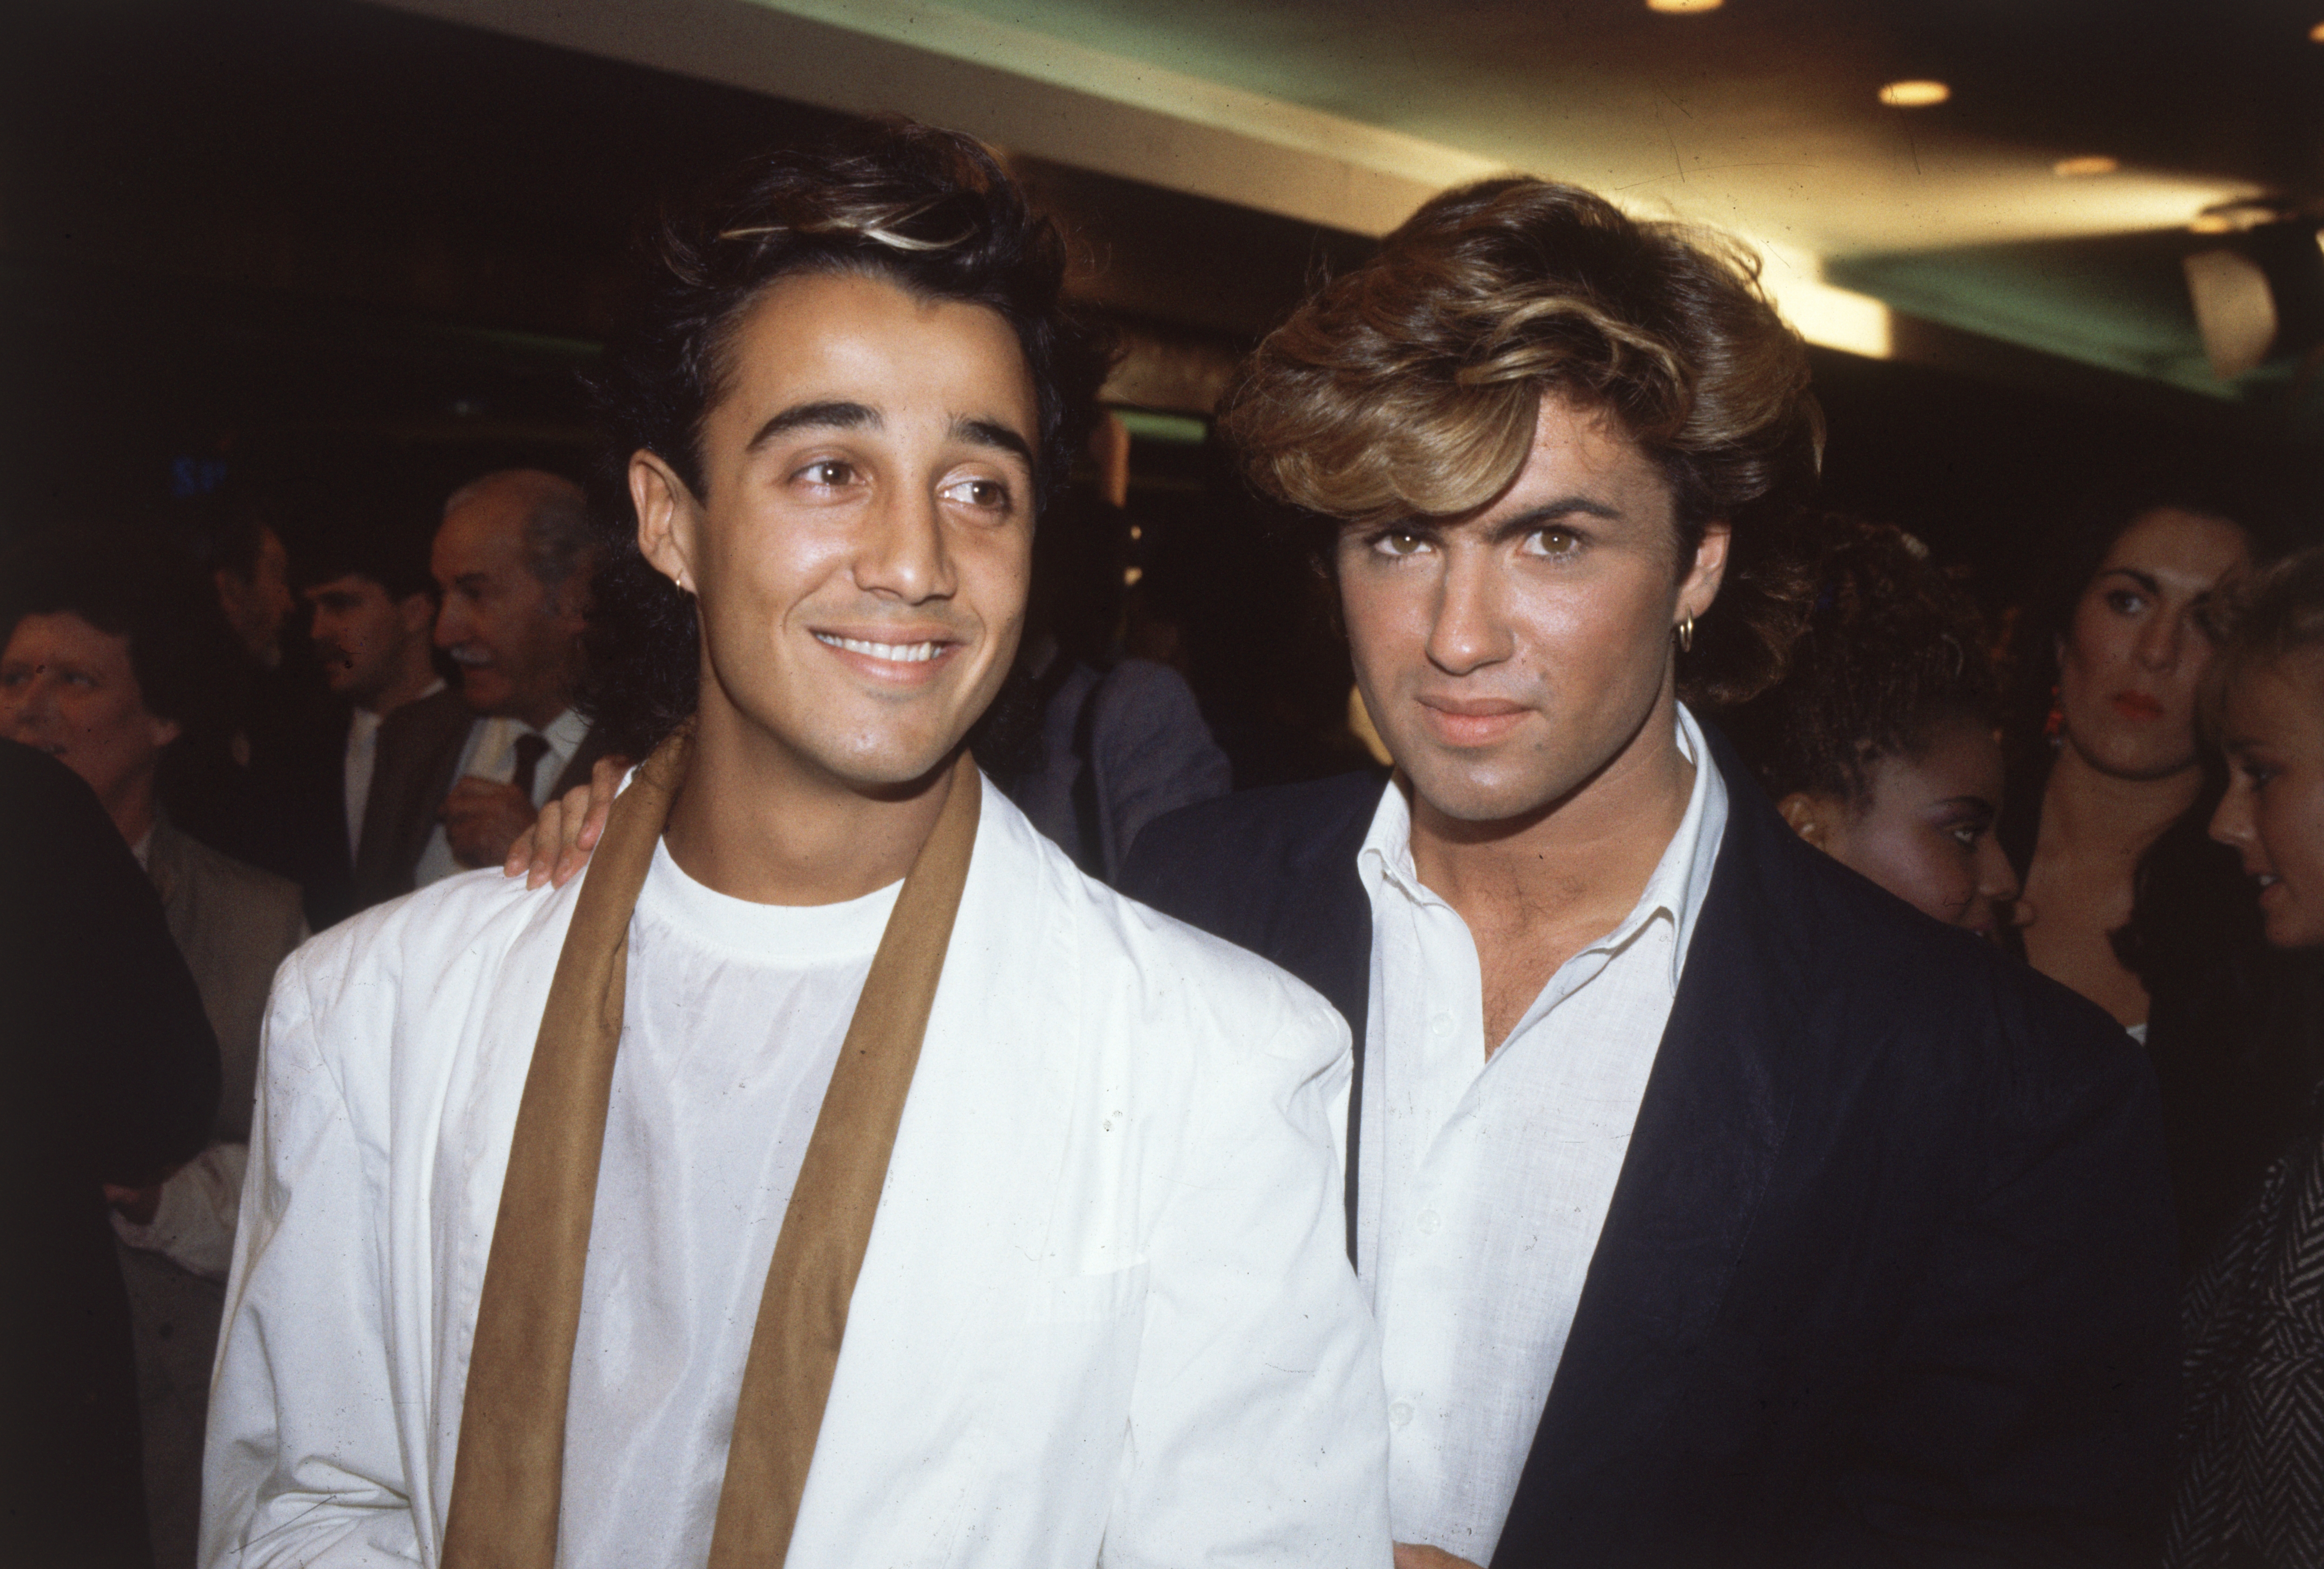 George Michael and Wham co-star Andrew Ridgley